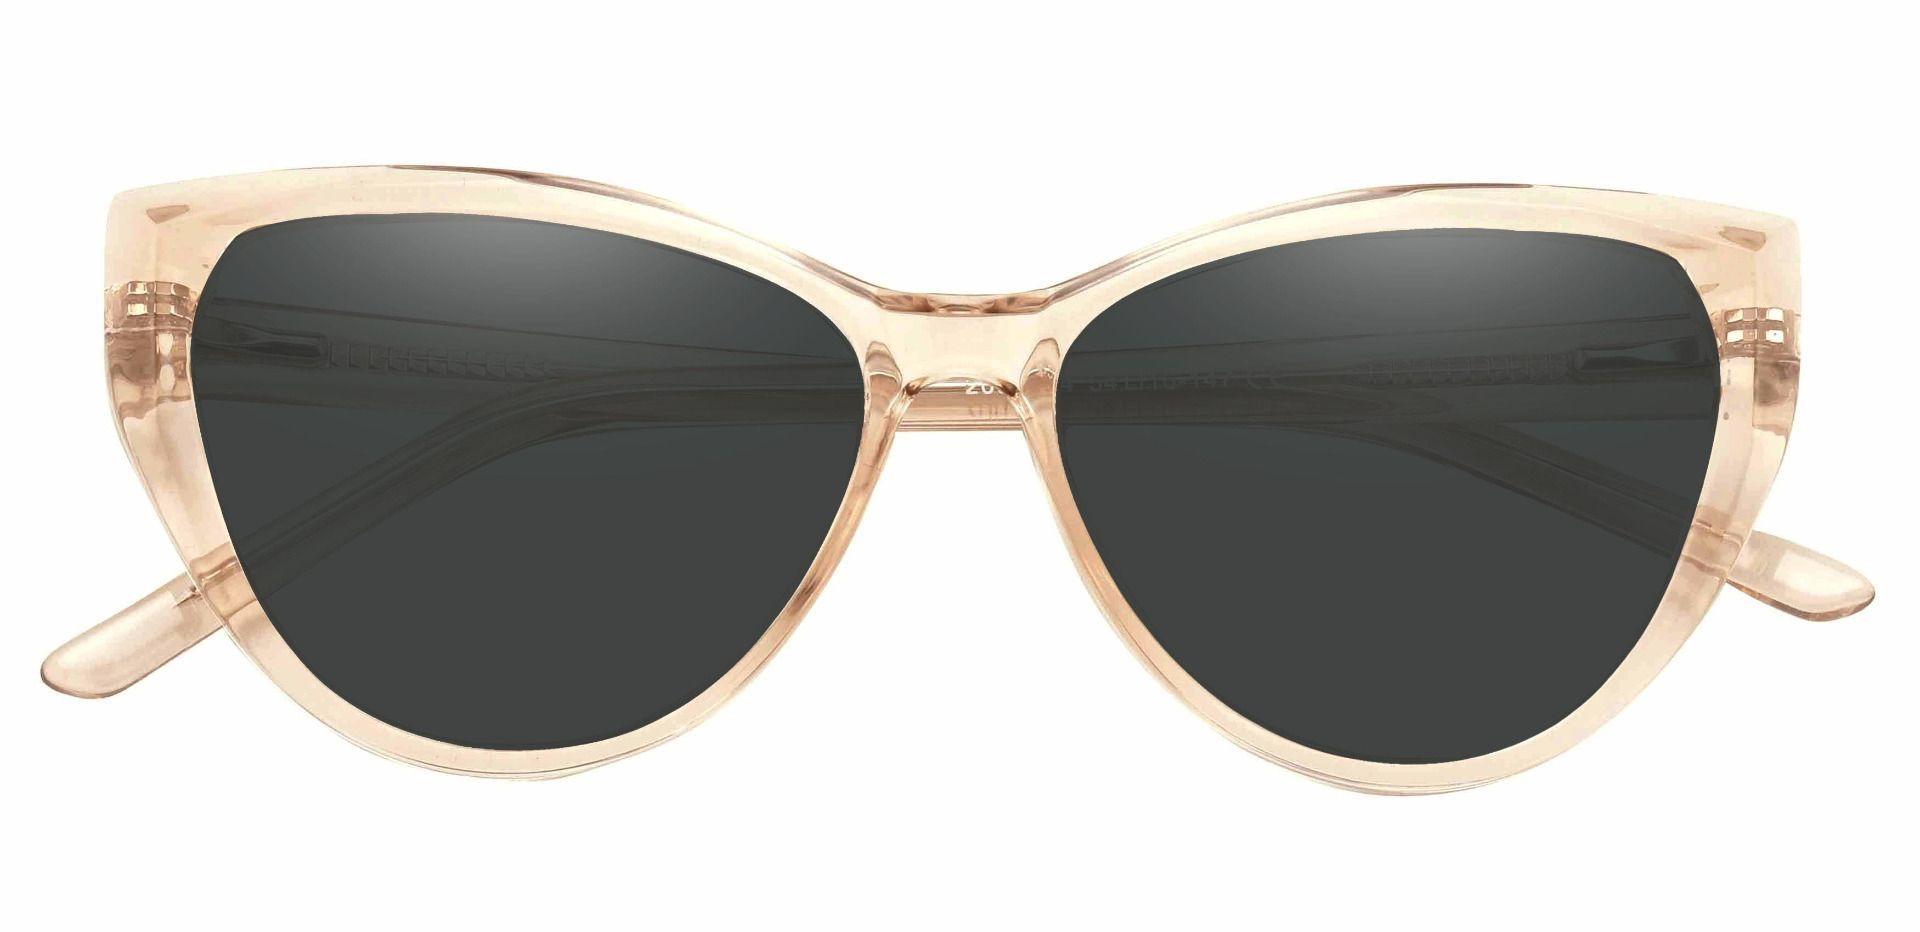 Ireland Cat Eye Lined Bifocal Sunglasses - Brown Frame With Gray Lenses